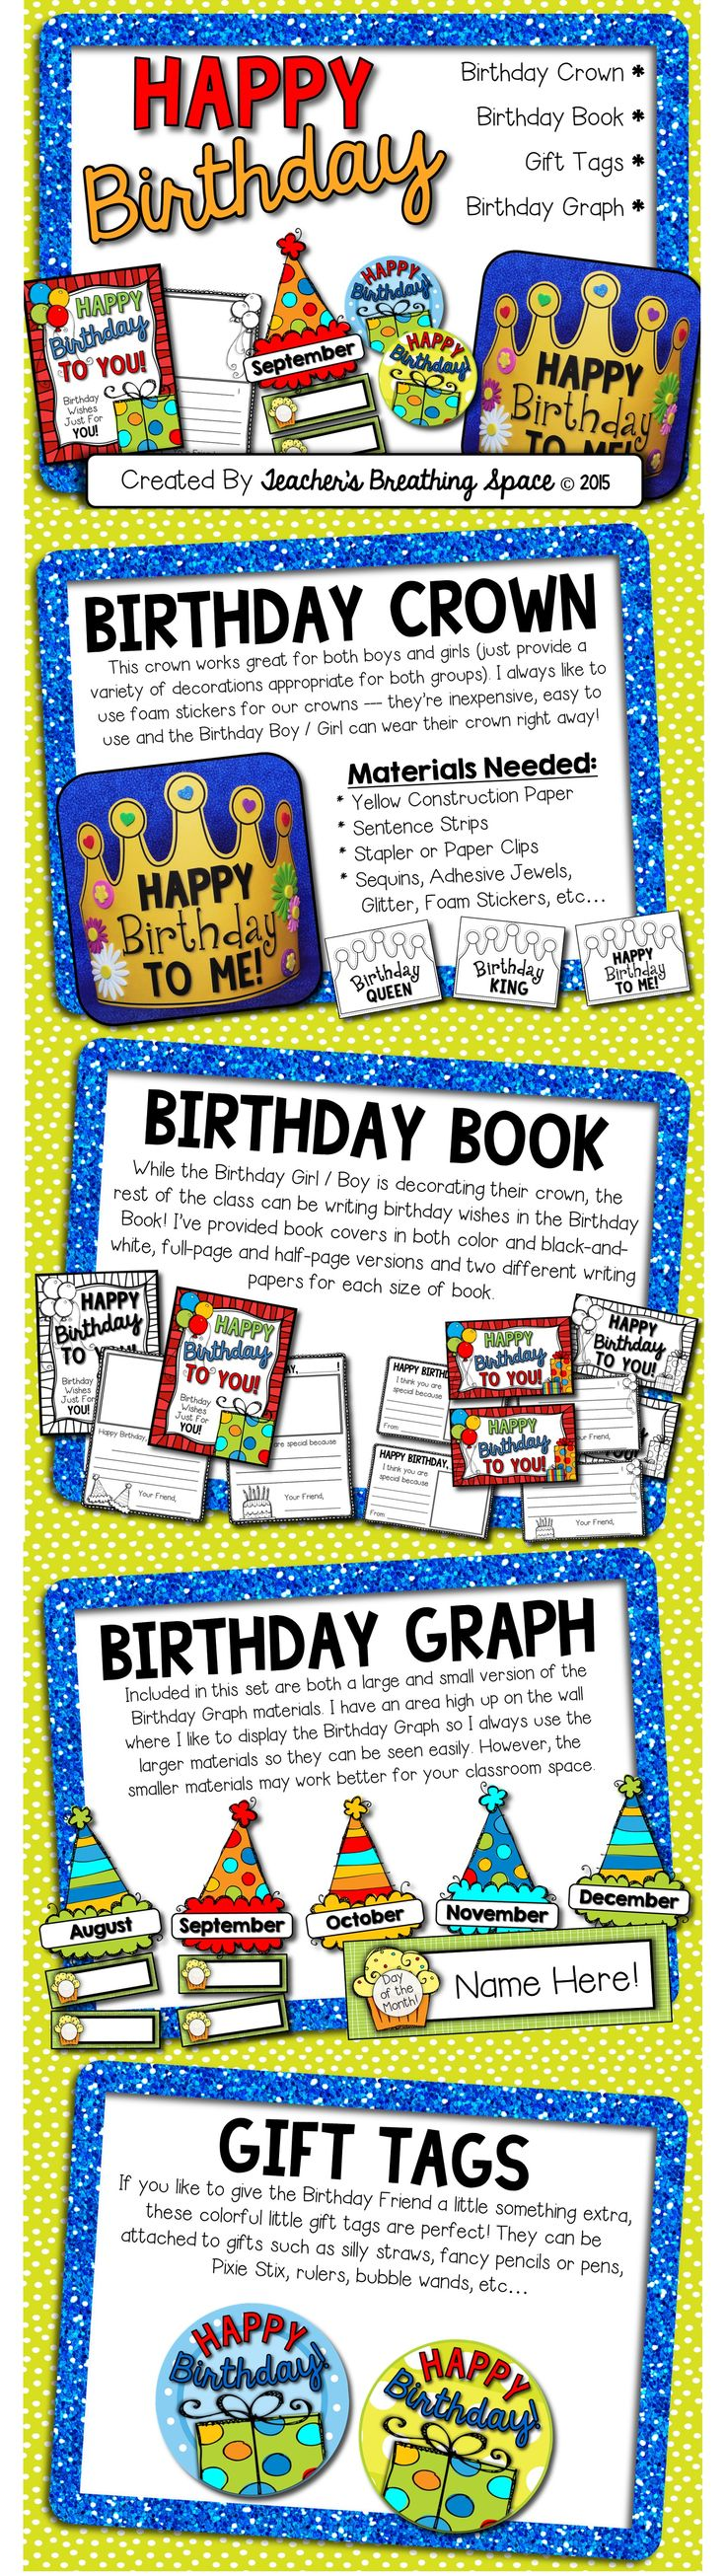 Happy Birthday Kit --- Birthday Crown / Birthday Book / Birthday Graph / Birthday Gift Tags! This set contains everything you need to help your Birthday Friends feel loved and celebrated on their special day!